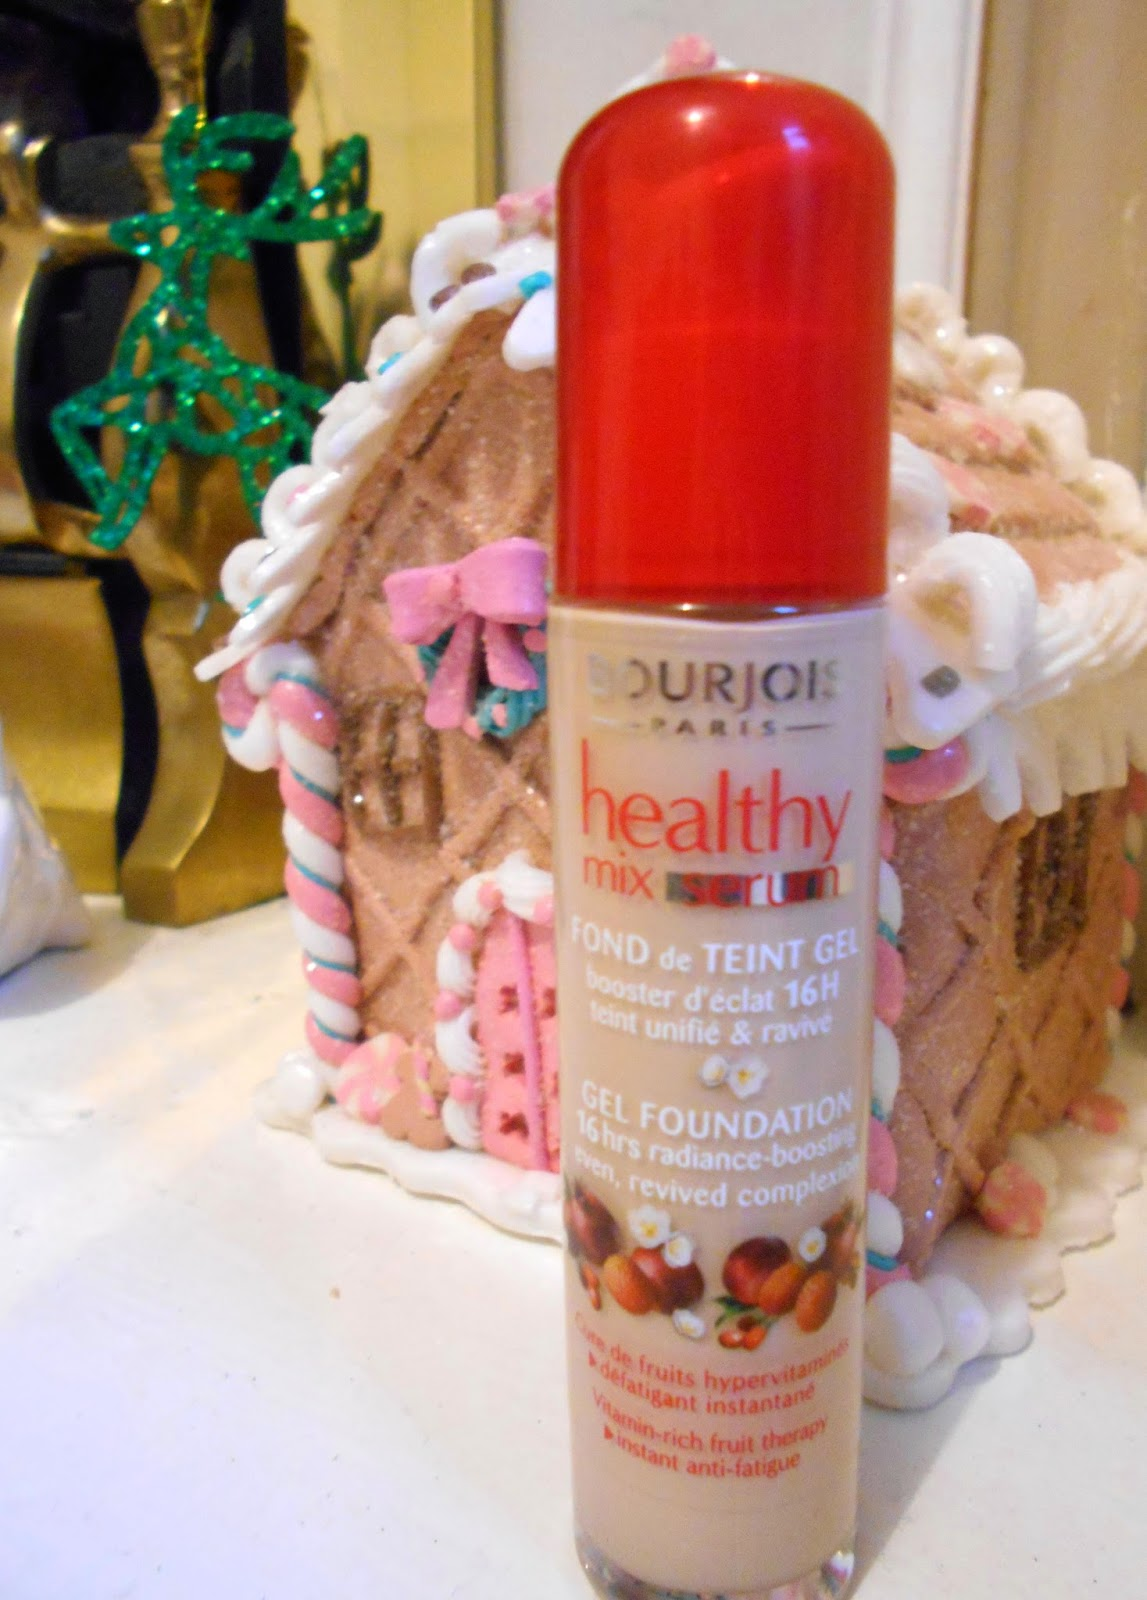 Bourjois Healthy Mix Gel Foundation